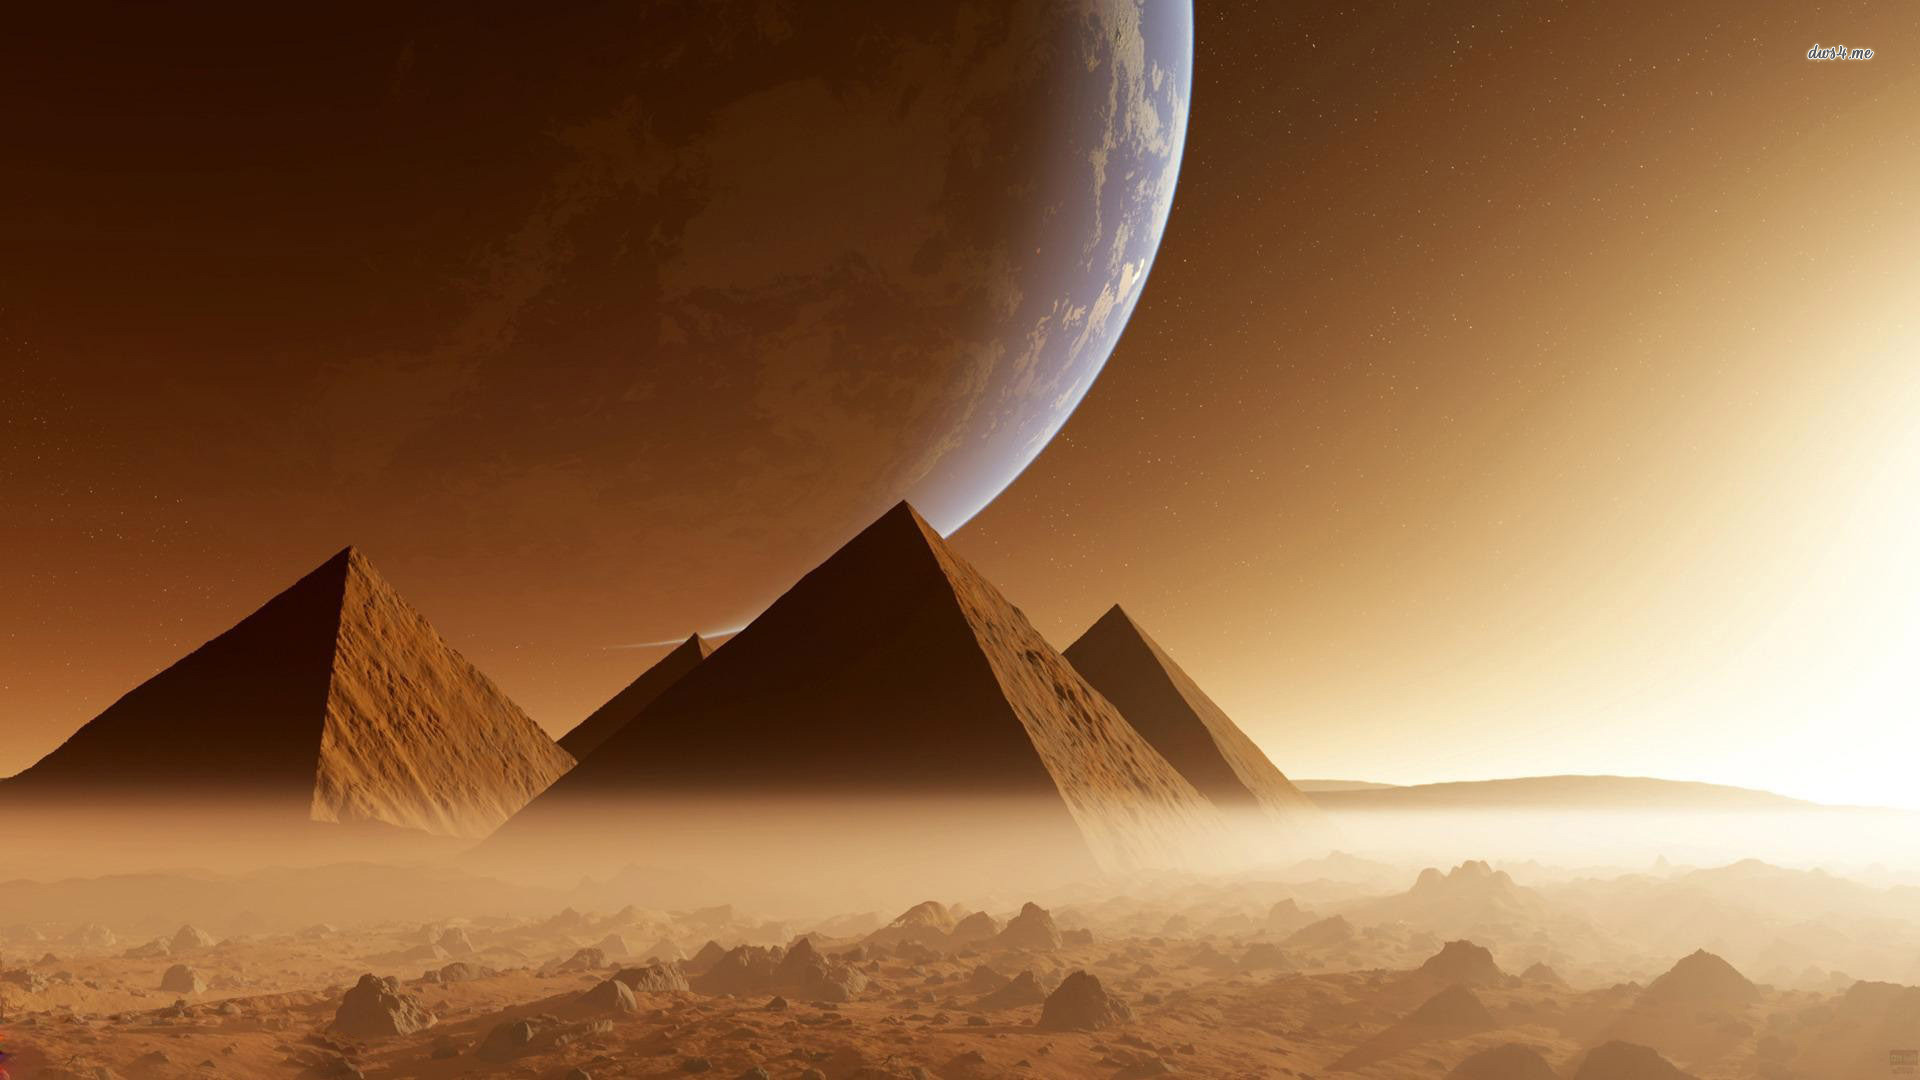 1920x1080 Pyramids on alien planet wallpaper 773919